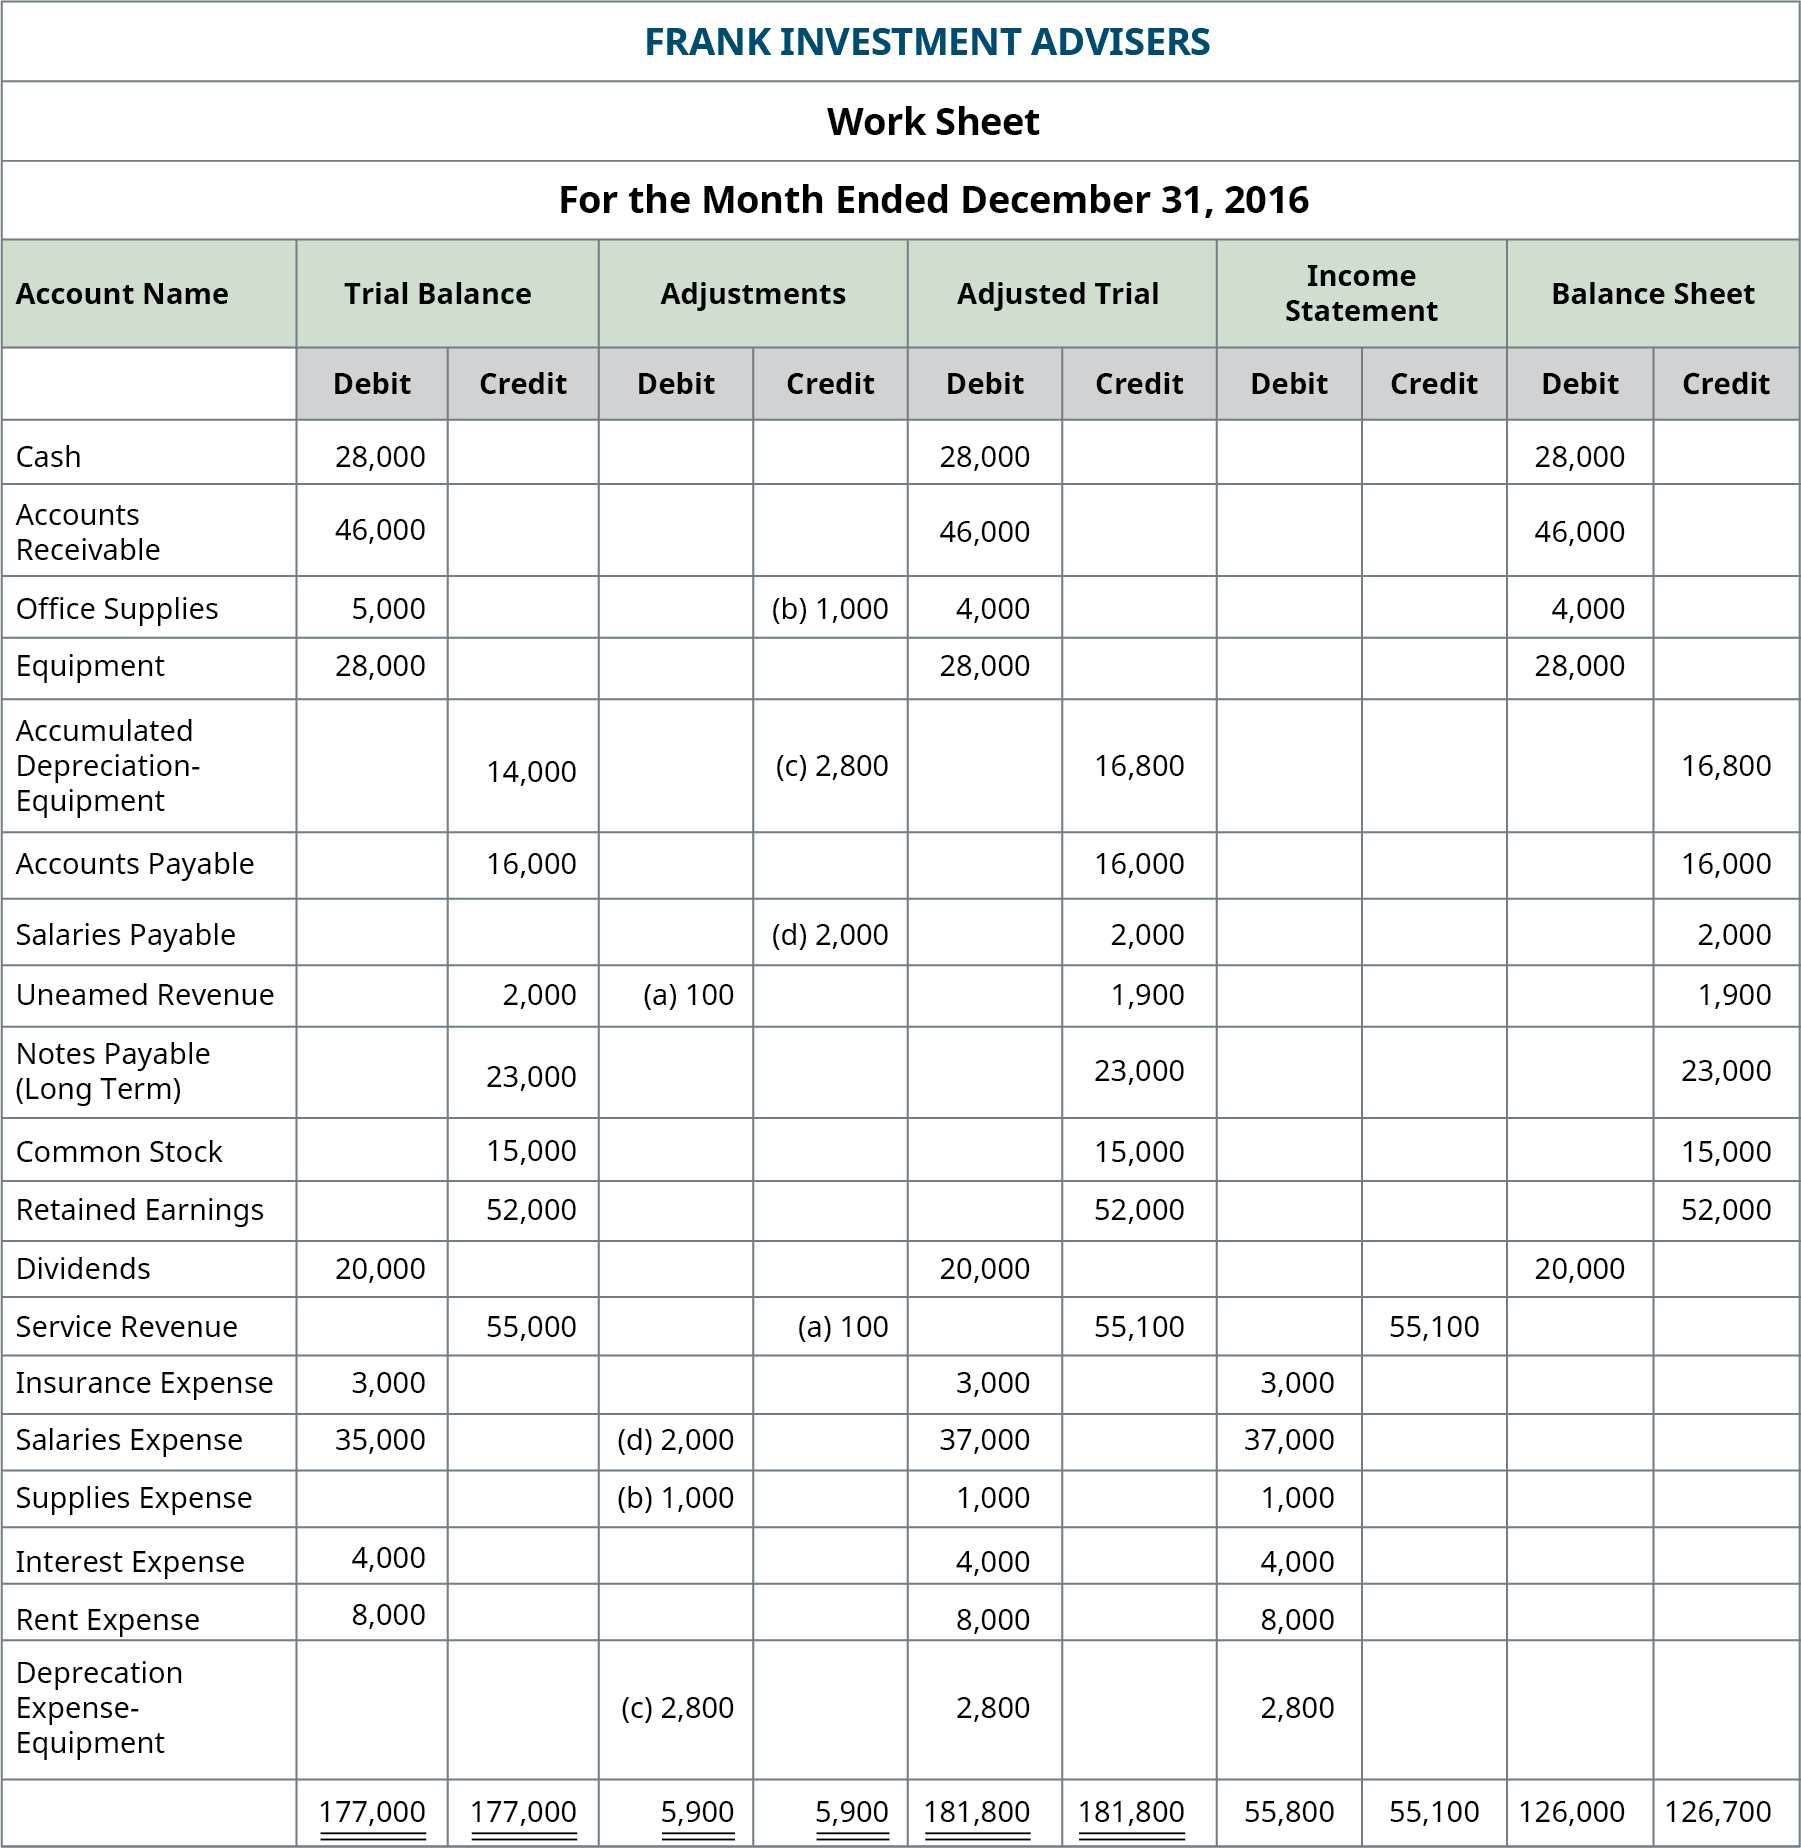 Frank Investment Advisers, Worksheet, December 31, 2016. Income Statement columns. Debit column: Insurance expense 3,000; Salaries expense 37,000, Supplies expense 1,000; Interest expense 4,000; Rent expense 8,000; Depreciation expense: equipment 2,800; total debit column 55,800. Credit column: Service revenue 55,100; total credit column 55,100. Balance Sheet columns. Debit column: Cash 28,000; Accounts receivable 46,000; Office supplies 4,000; Equipment 28,000; Dividends 20,000; total debit column 126,000. Credit column: Accumulated depreciation: equipment 16,800; Accounts payable 16,000; Salaries payable 2,000; Unearned revenue 1,900; Notes Payable (long term) 23,000; Common stock 15,000; Retained earnings 52,000; total credit column 126,700.